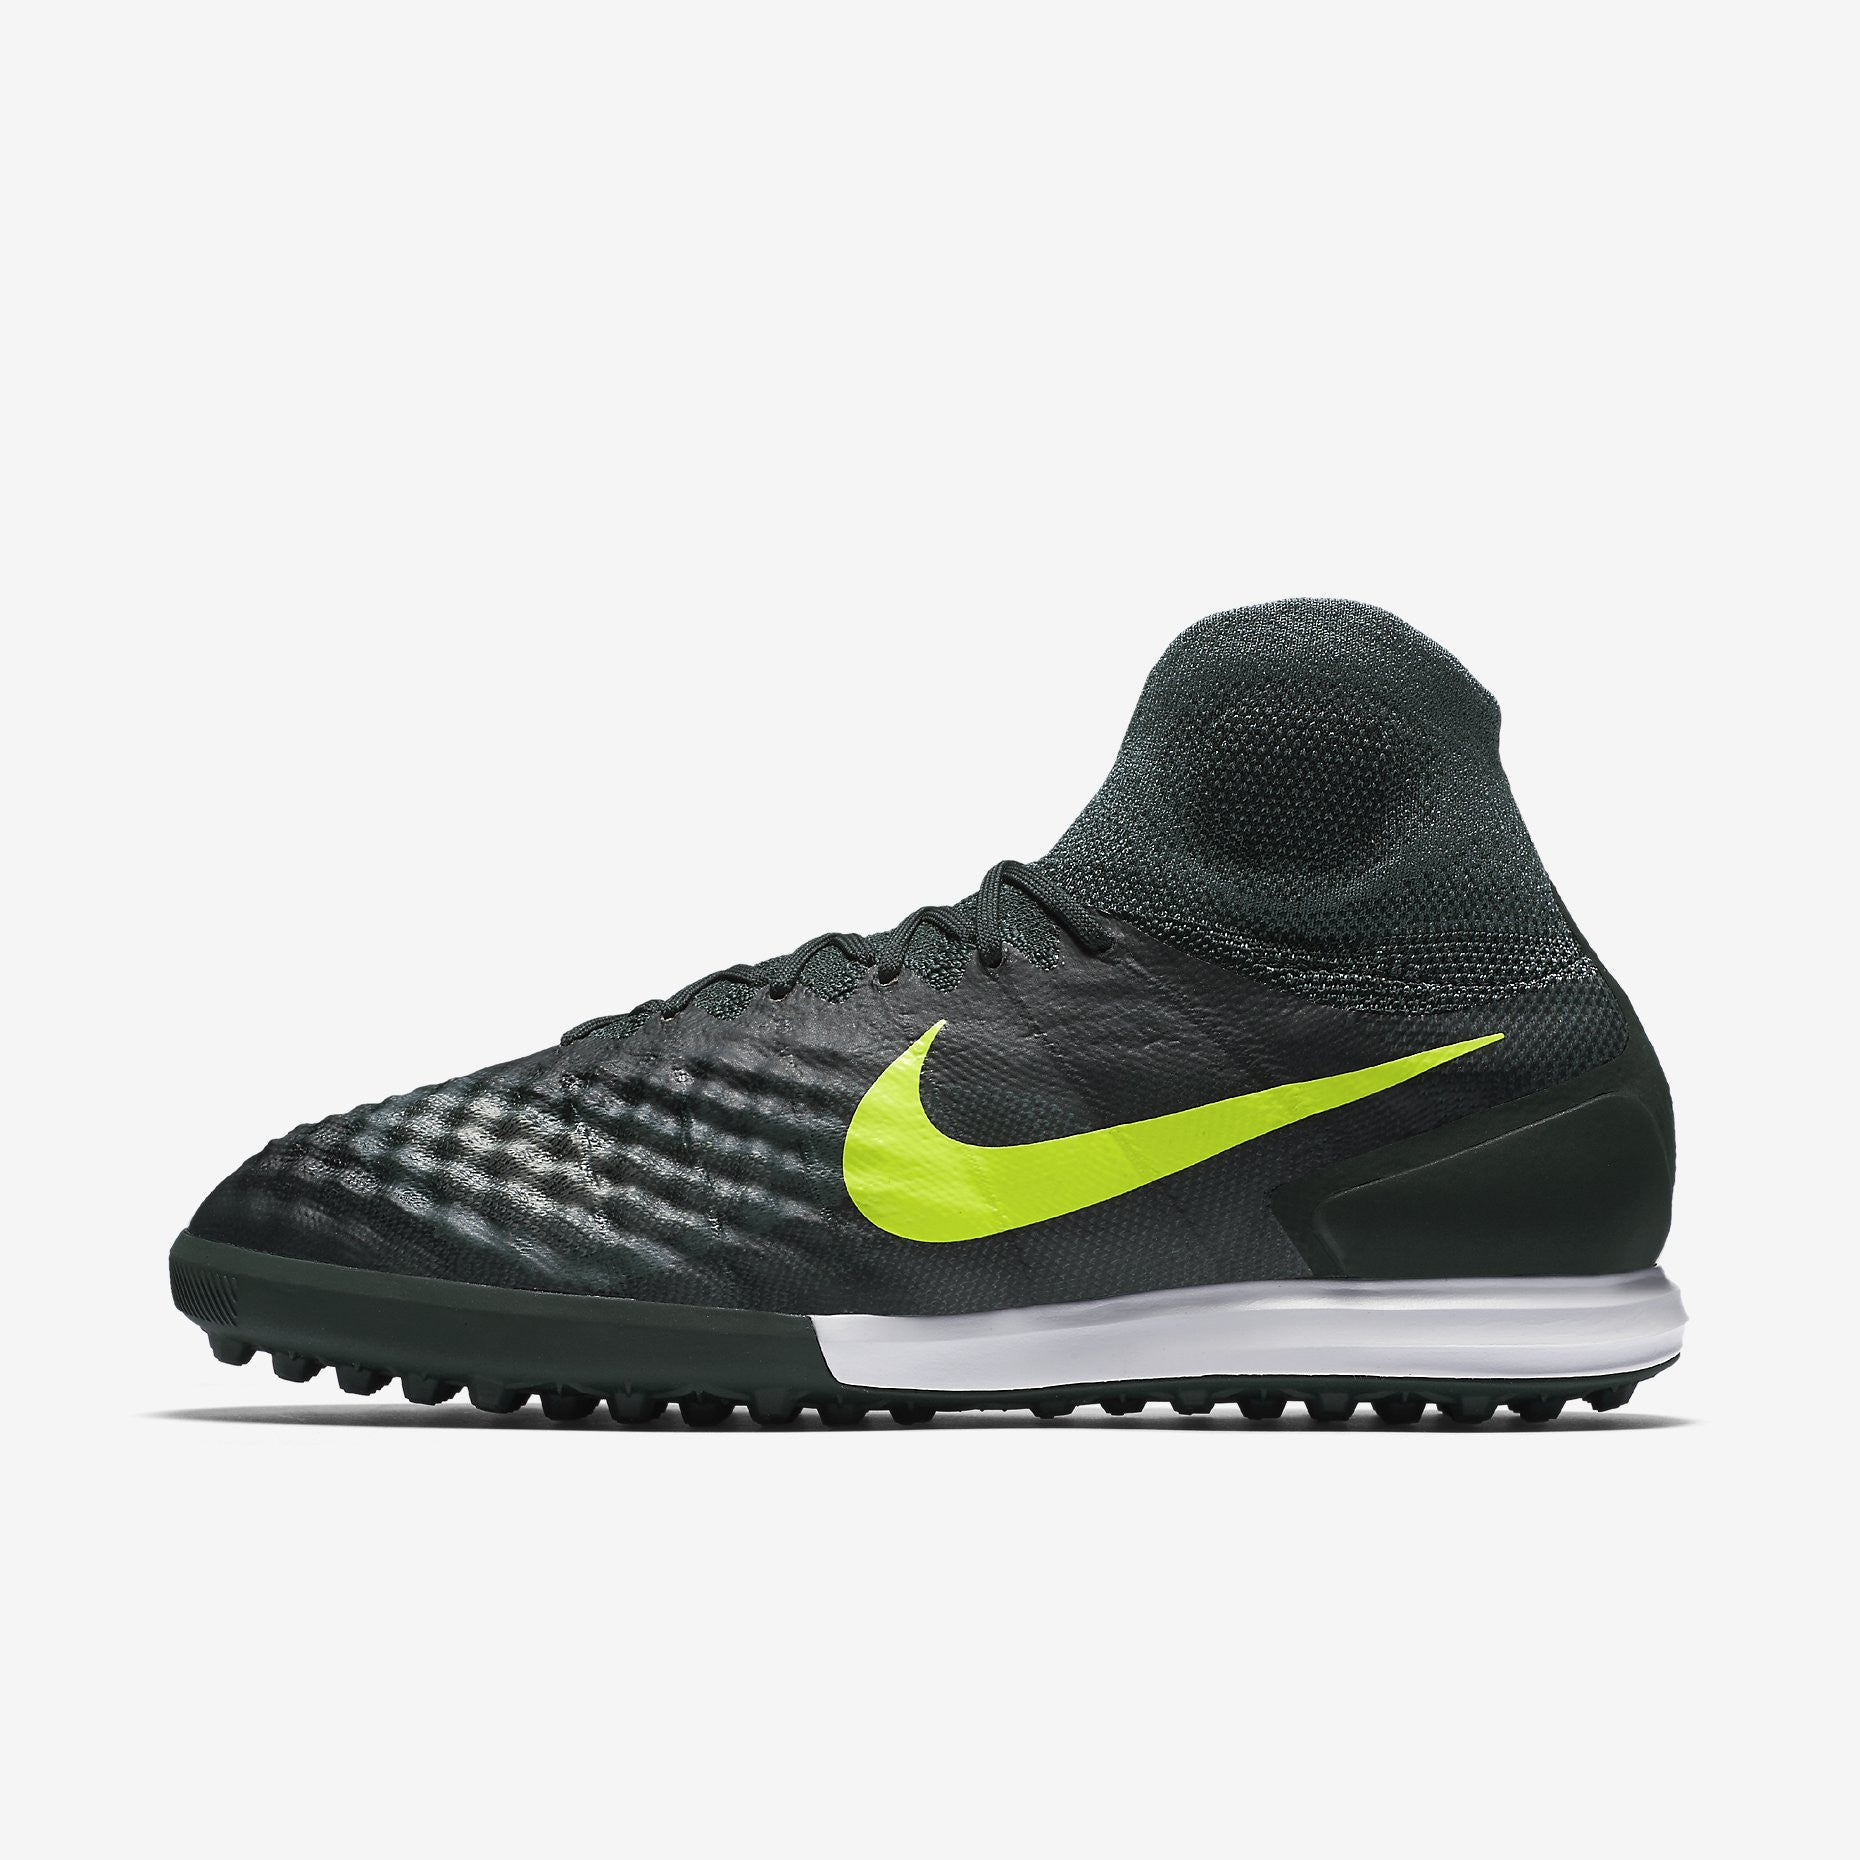 c0341d54a Nike - Nike Men s MagistaX Proximo II Dynamic Fit Turf Football Boot - La  Liga Soccer